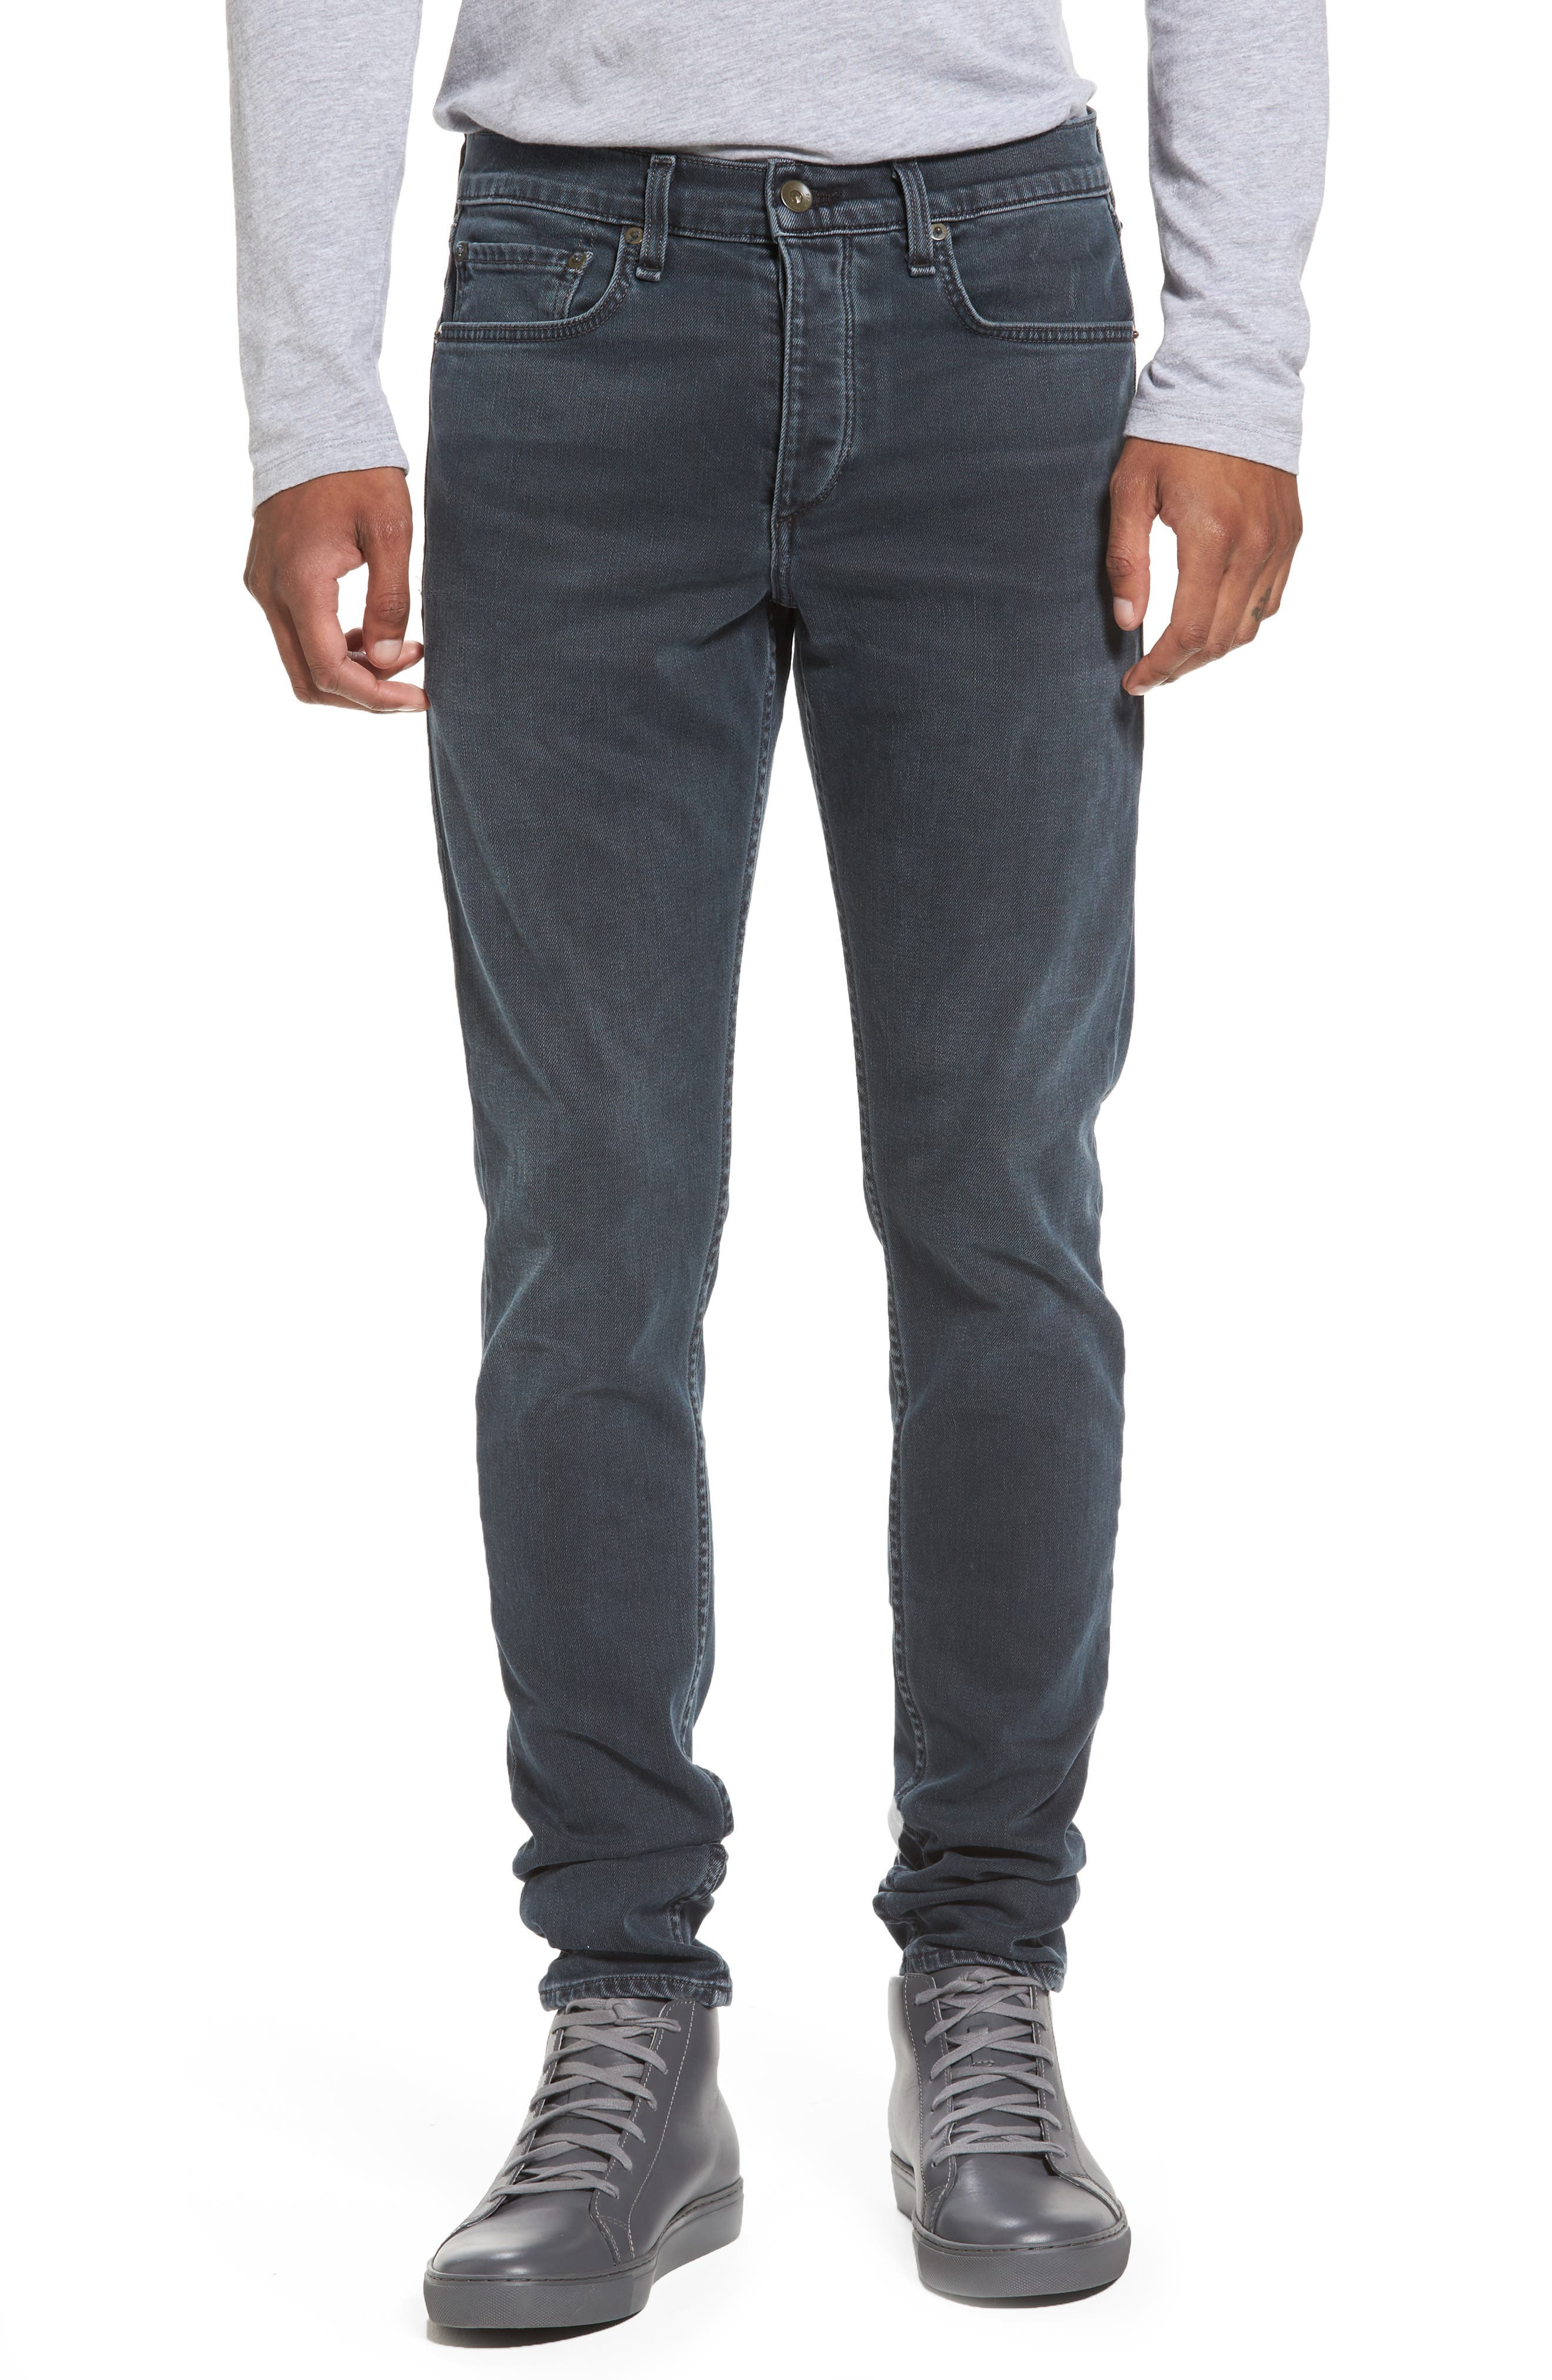 Fit 1 Skinny Fit Jeans,                             Main thumbnail 1, color,                             Minna